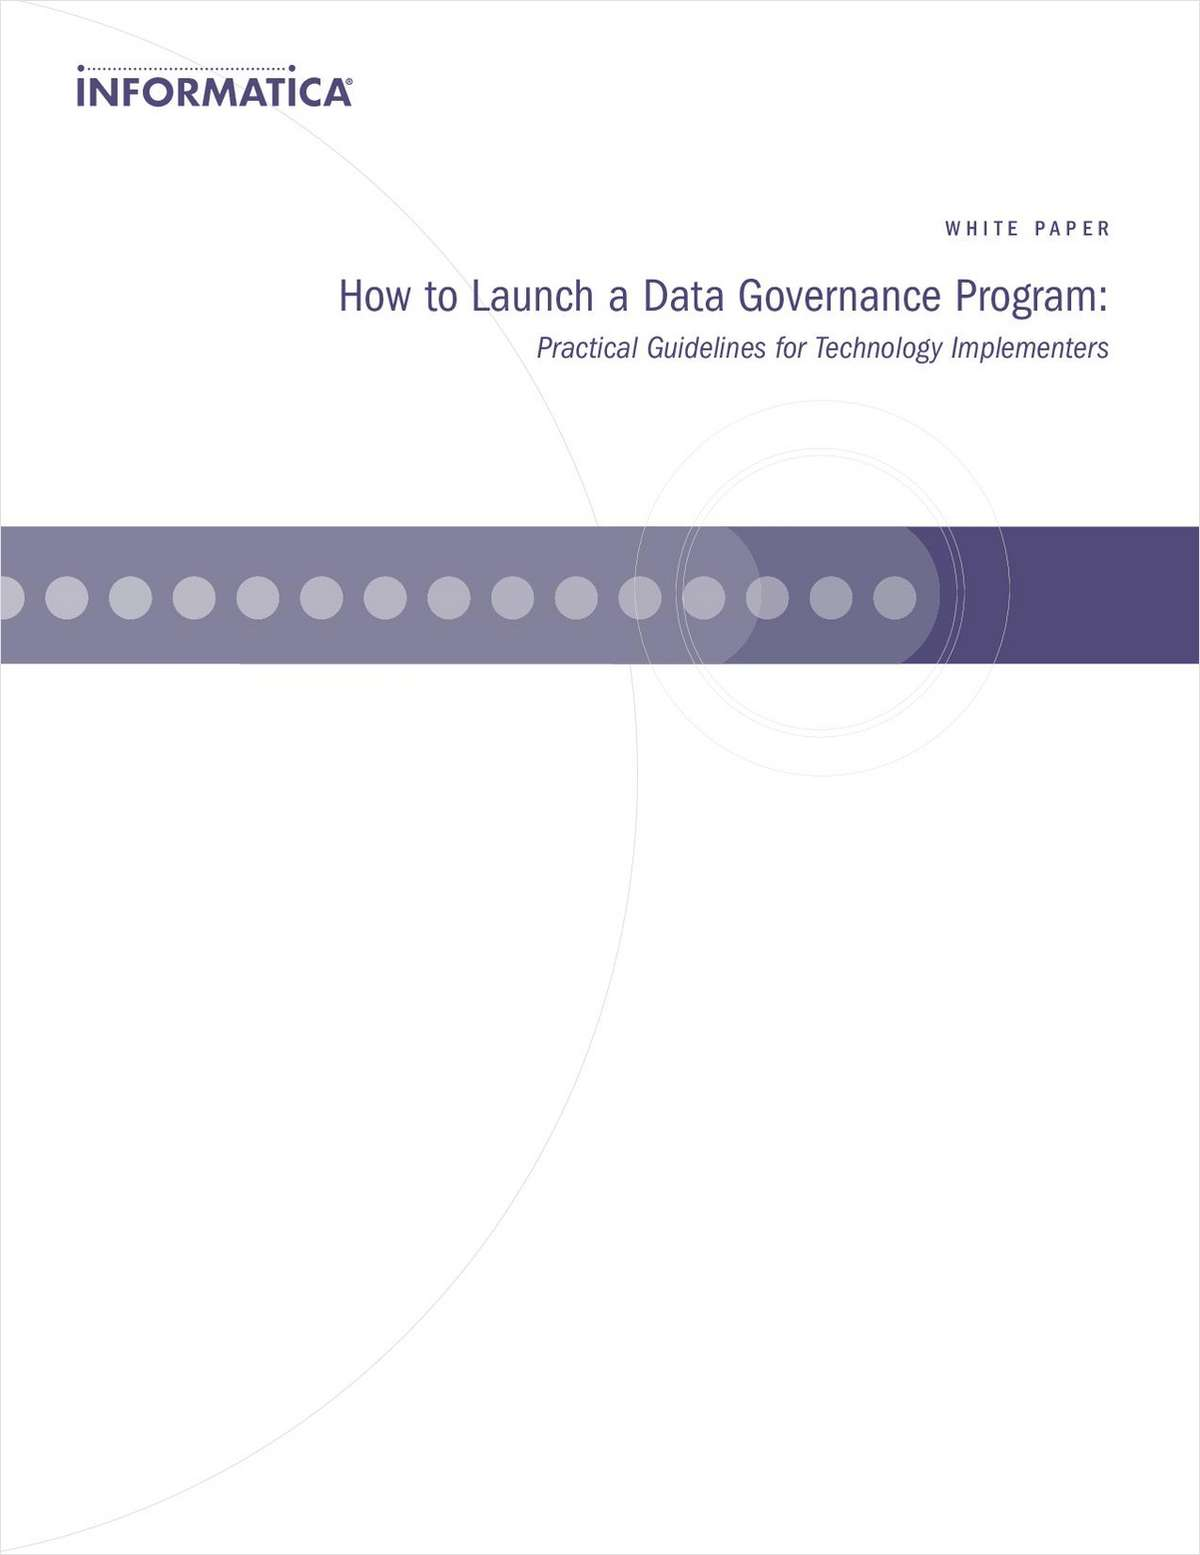 How to Launch a Data Governance Program